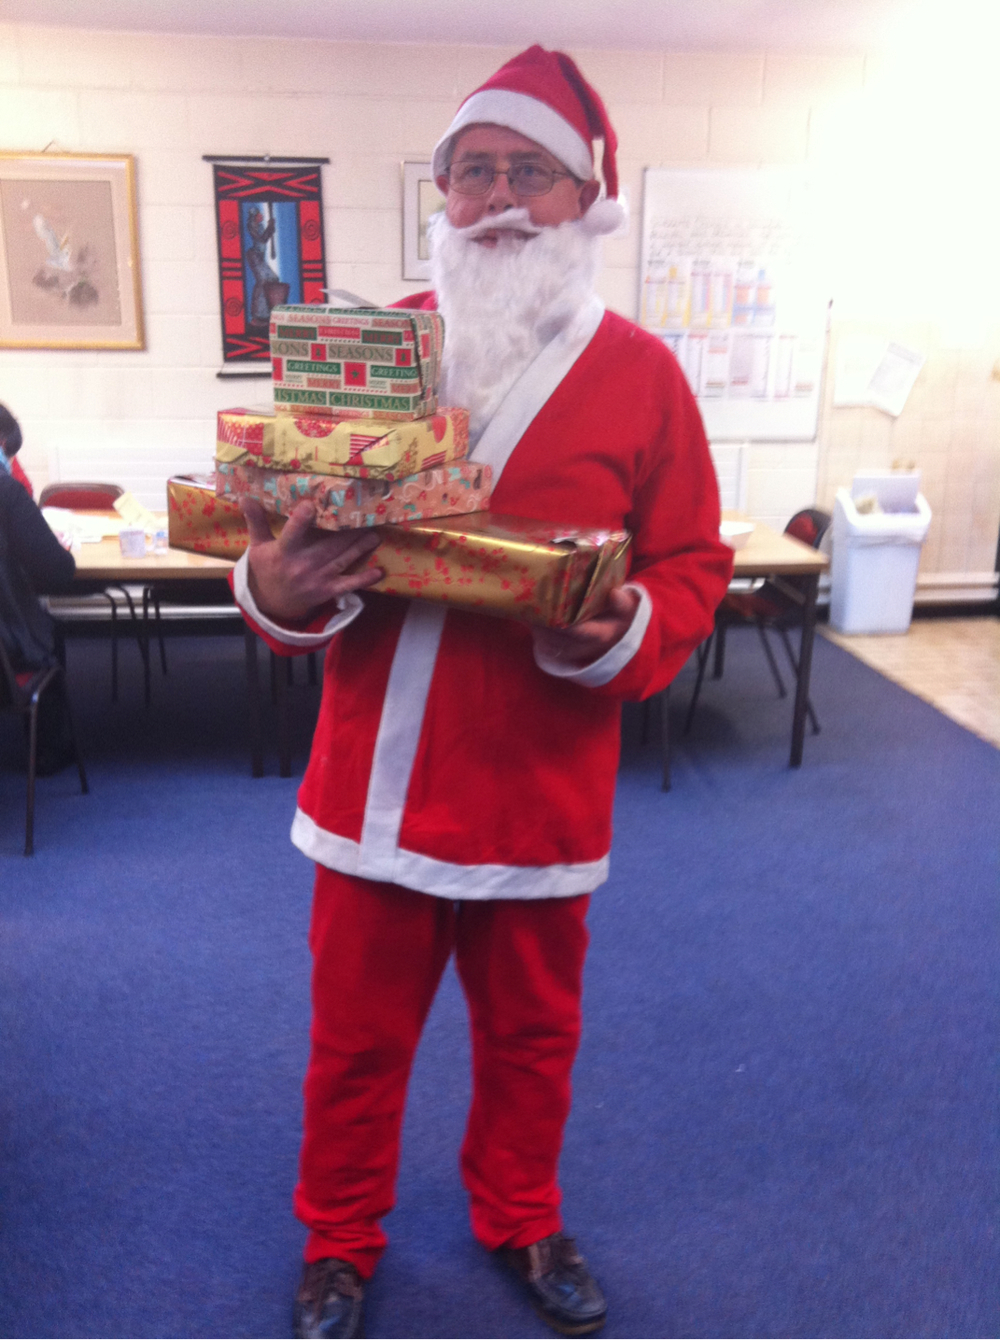 Santa arrived early in Colaiste Chiarain!!